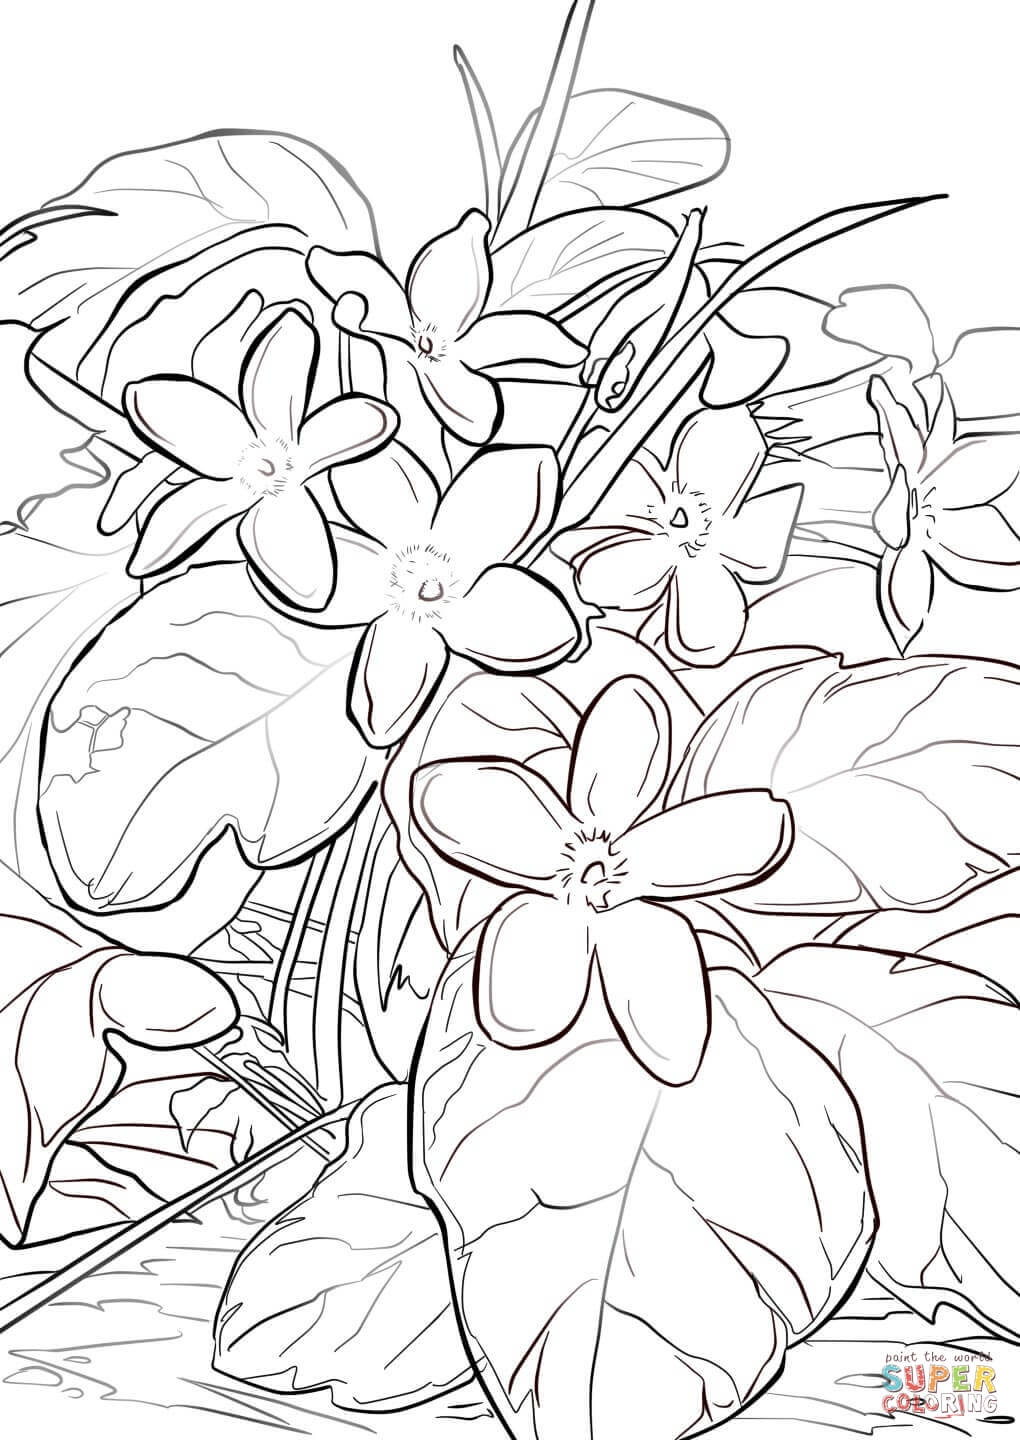 27 Mayflower Coloring Page Printable | FREE COLORING PAGES - Part 3